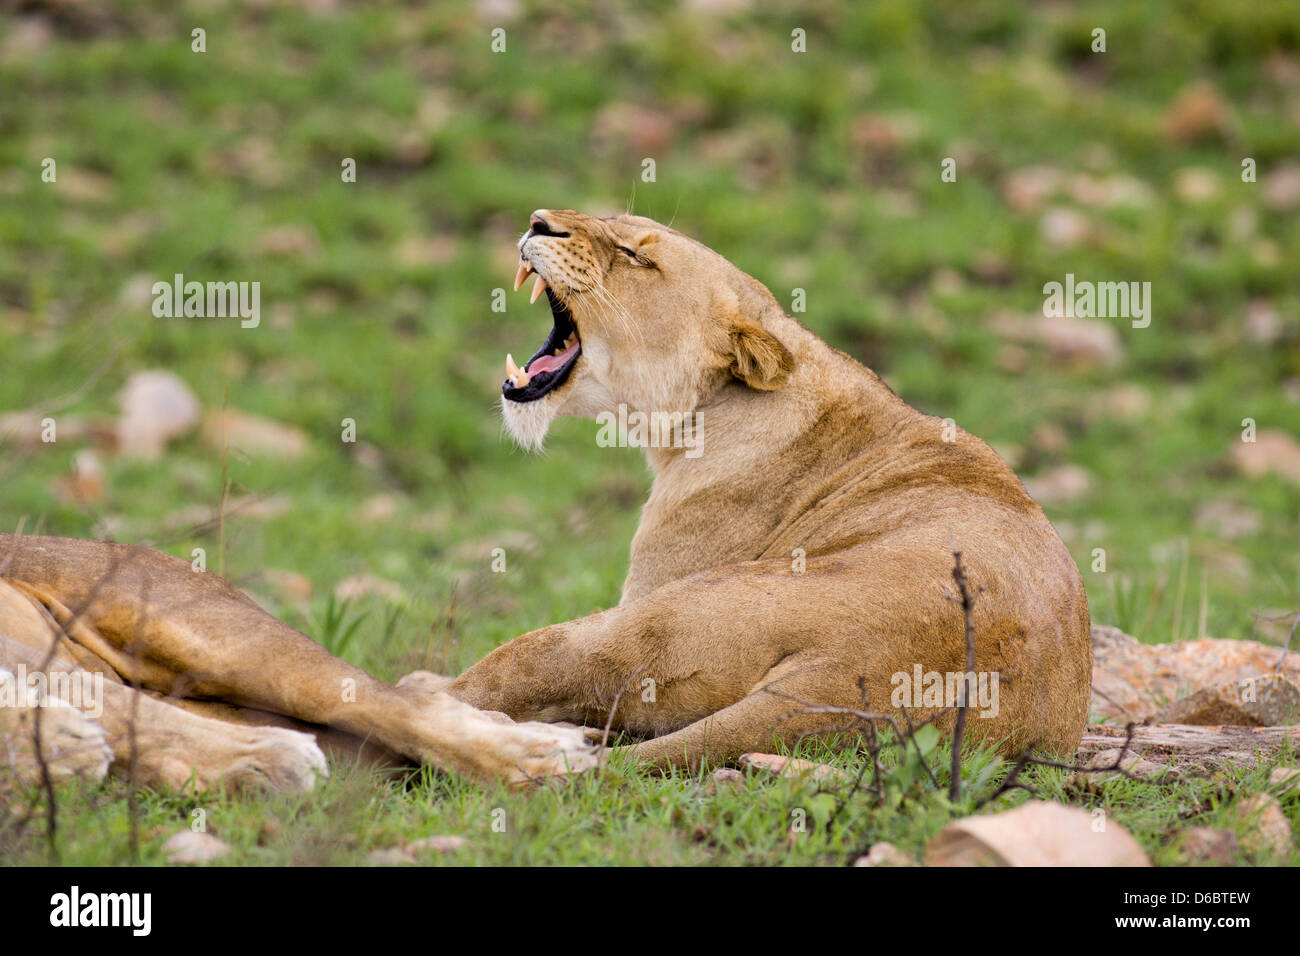 A lioness has a good yawn displaying her long canines. Phinda Game Reserve, South Africa. - Stock Image